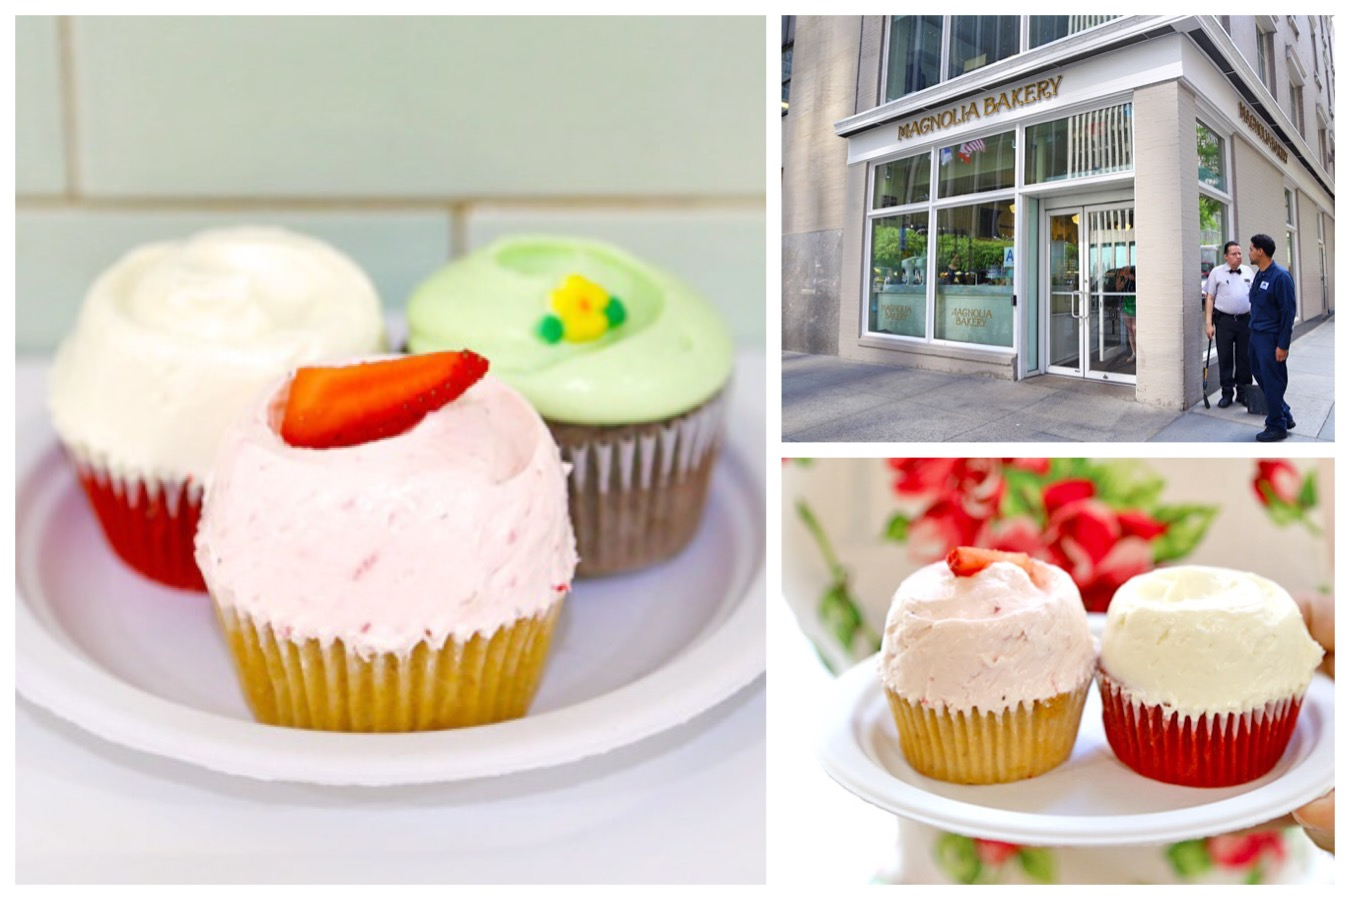 Magnolia Bakery - Cupcake Institution To Visit In New York City, Too Sweet For Me Though